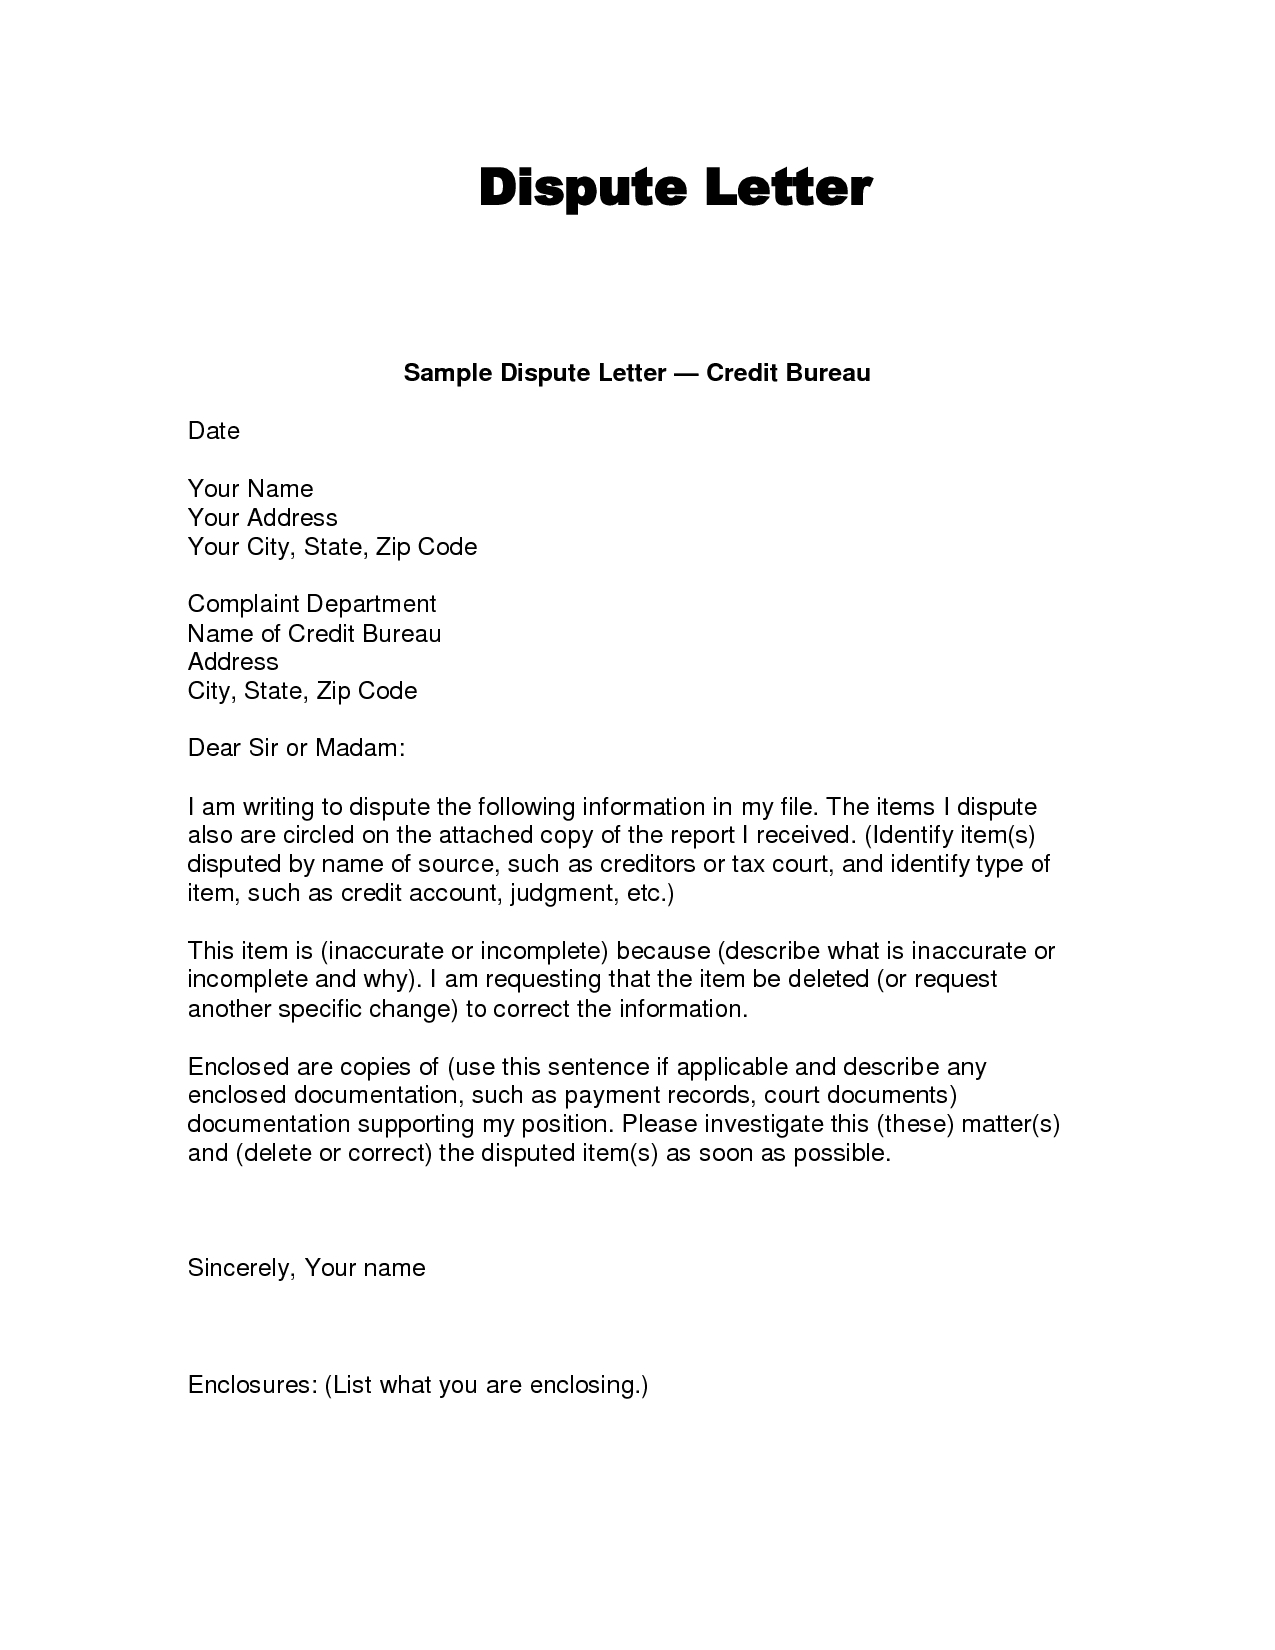 letter template to dispute credit report example-credit dispute letter templates 1-i